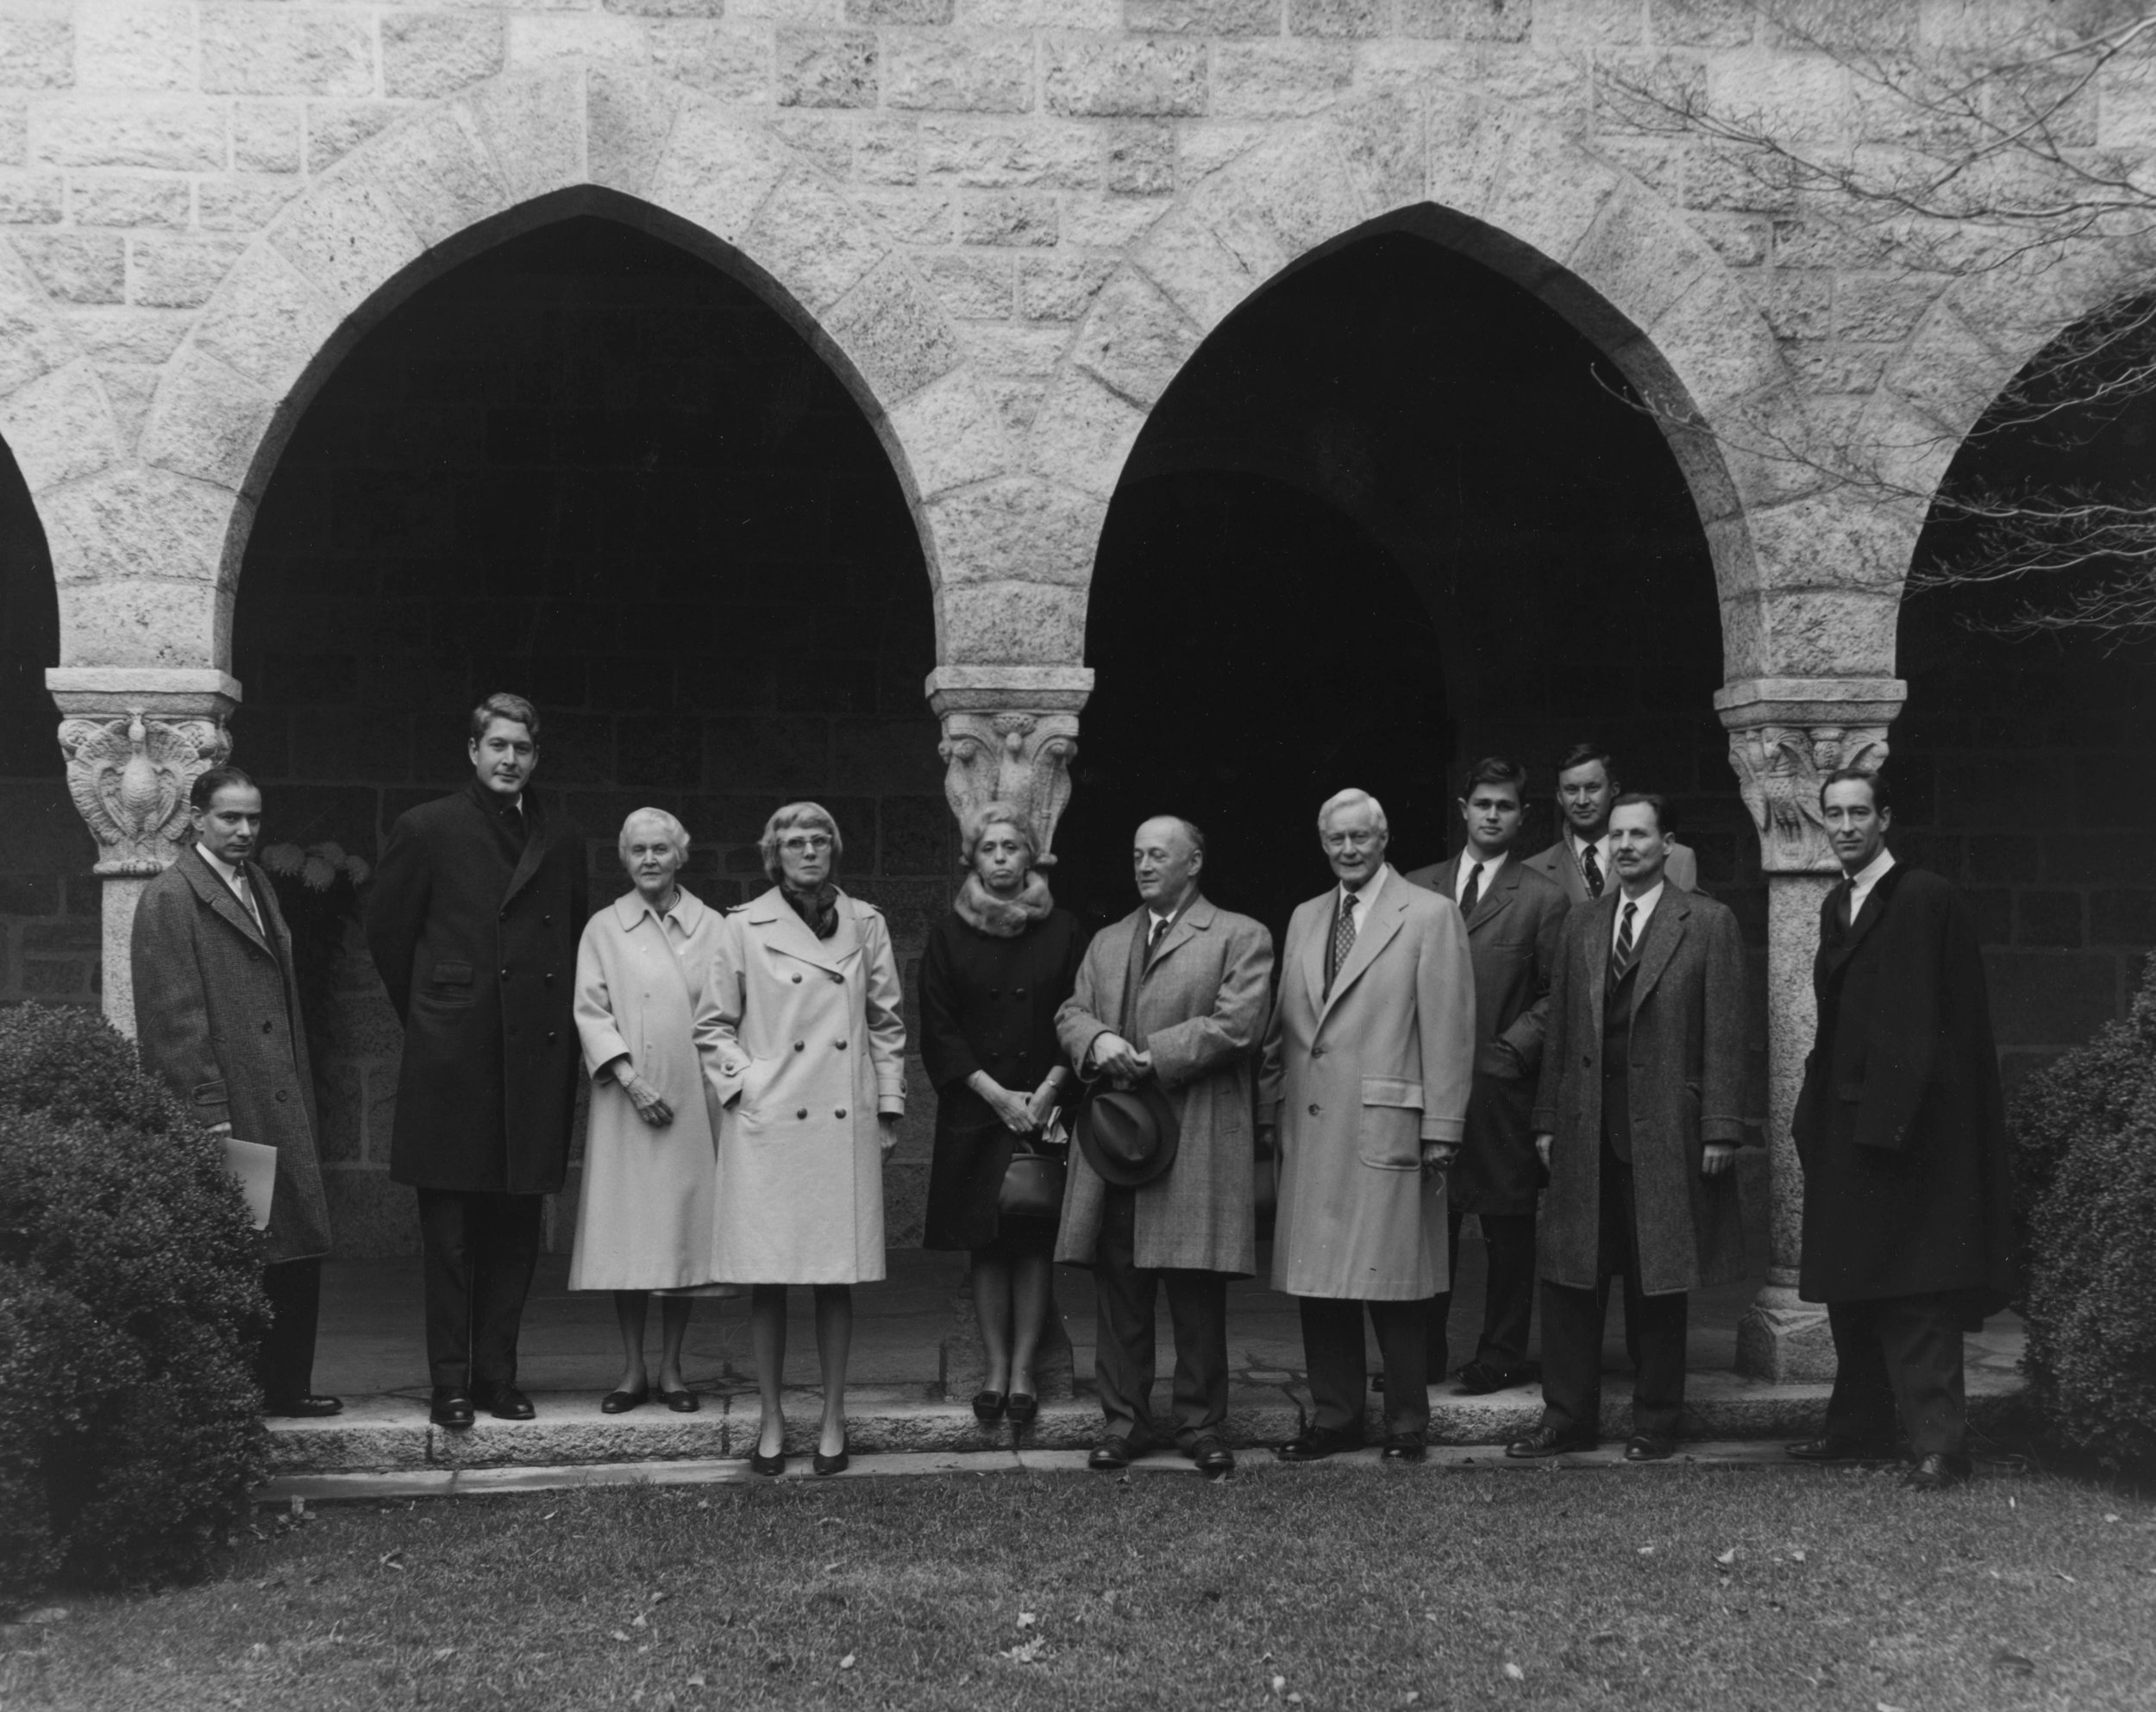 Figure 1: A photograph of the group in Glencairn's cloister: (l-r) E. Bruce Glenn, Thomas P. Miller, Mildred Pitcairn, Bonnie Young, Carmen Gómez-Moreno, James Rorimer, Raymond Pitcairn, Harry Parker III, Lachlan Pitcairn (slightly behind), William H. Forsyth, and Thomas Hoving. Photograph by Michael Pitcairn.